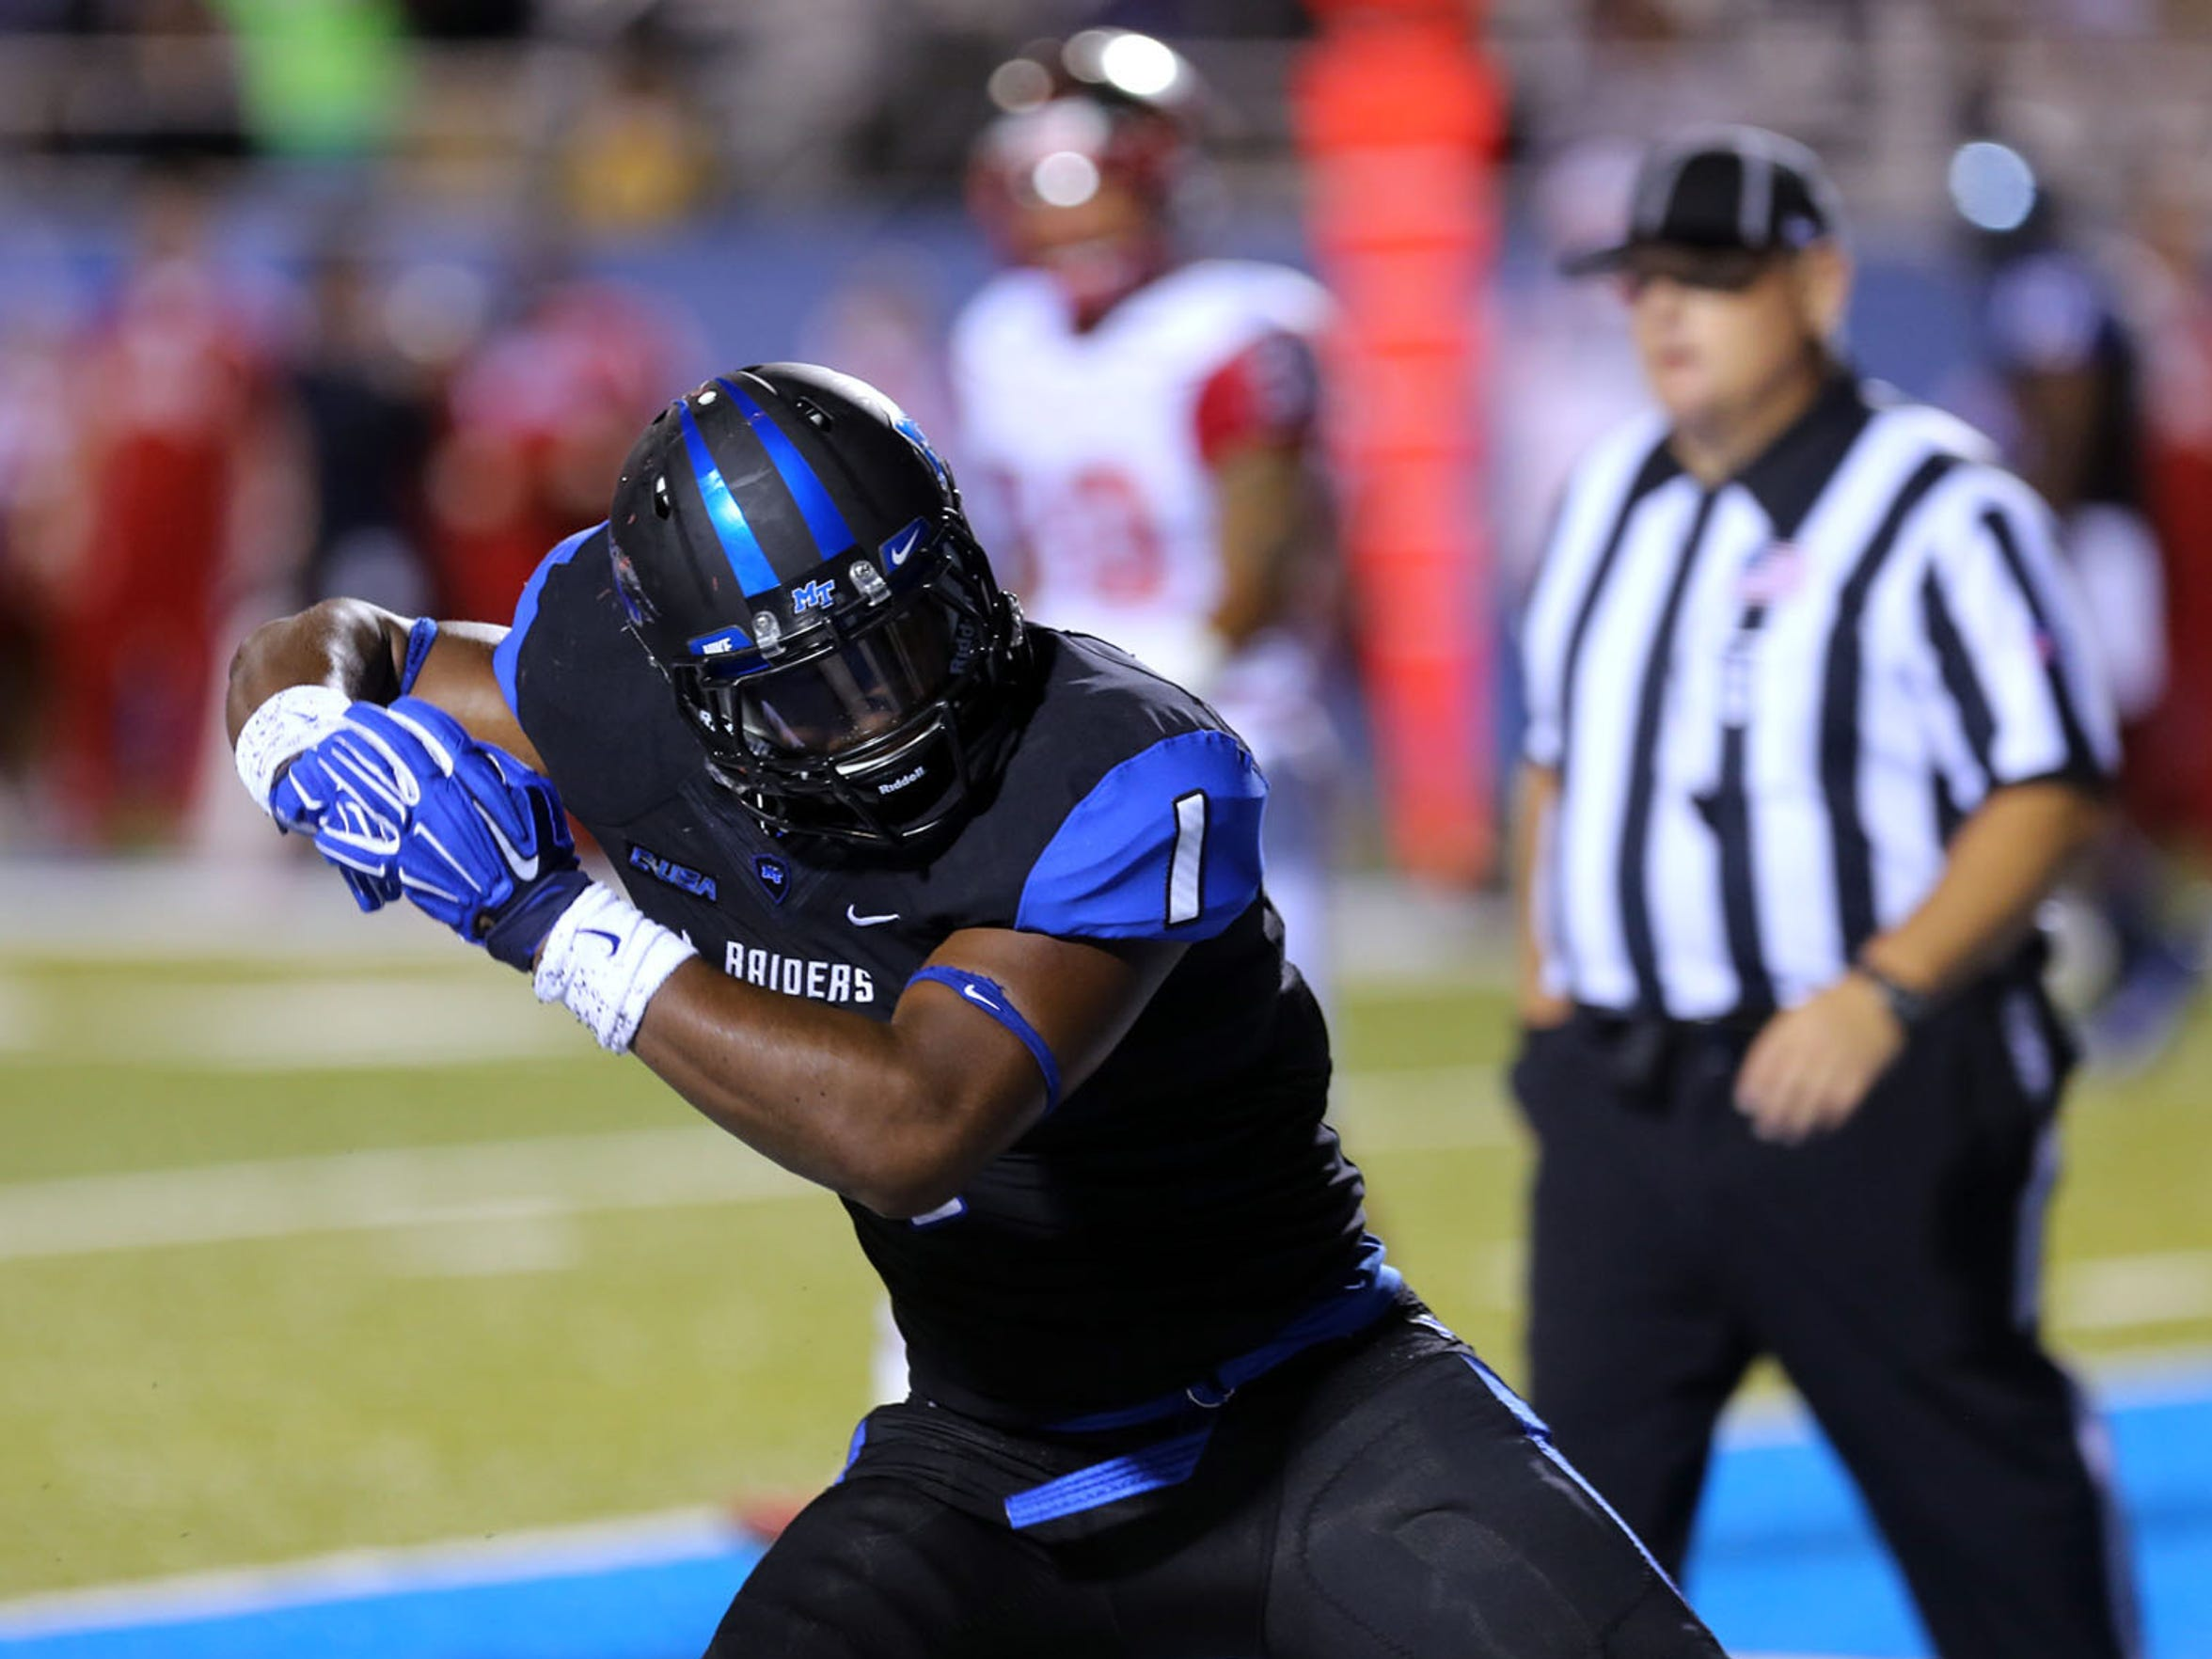 MTSU running back Shane Tucker leads the Blue Raider offense this year. He is one of three running backs in the rotation who could see action Saturday night.